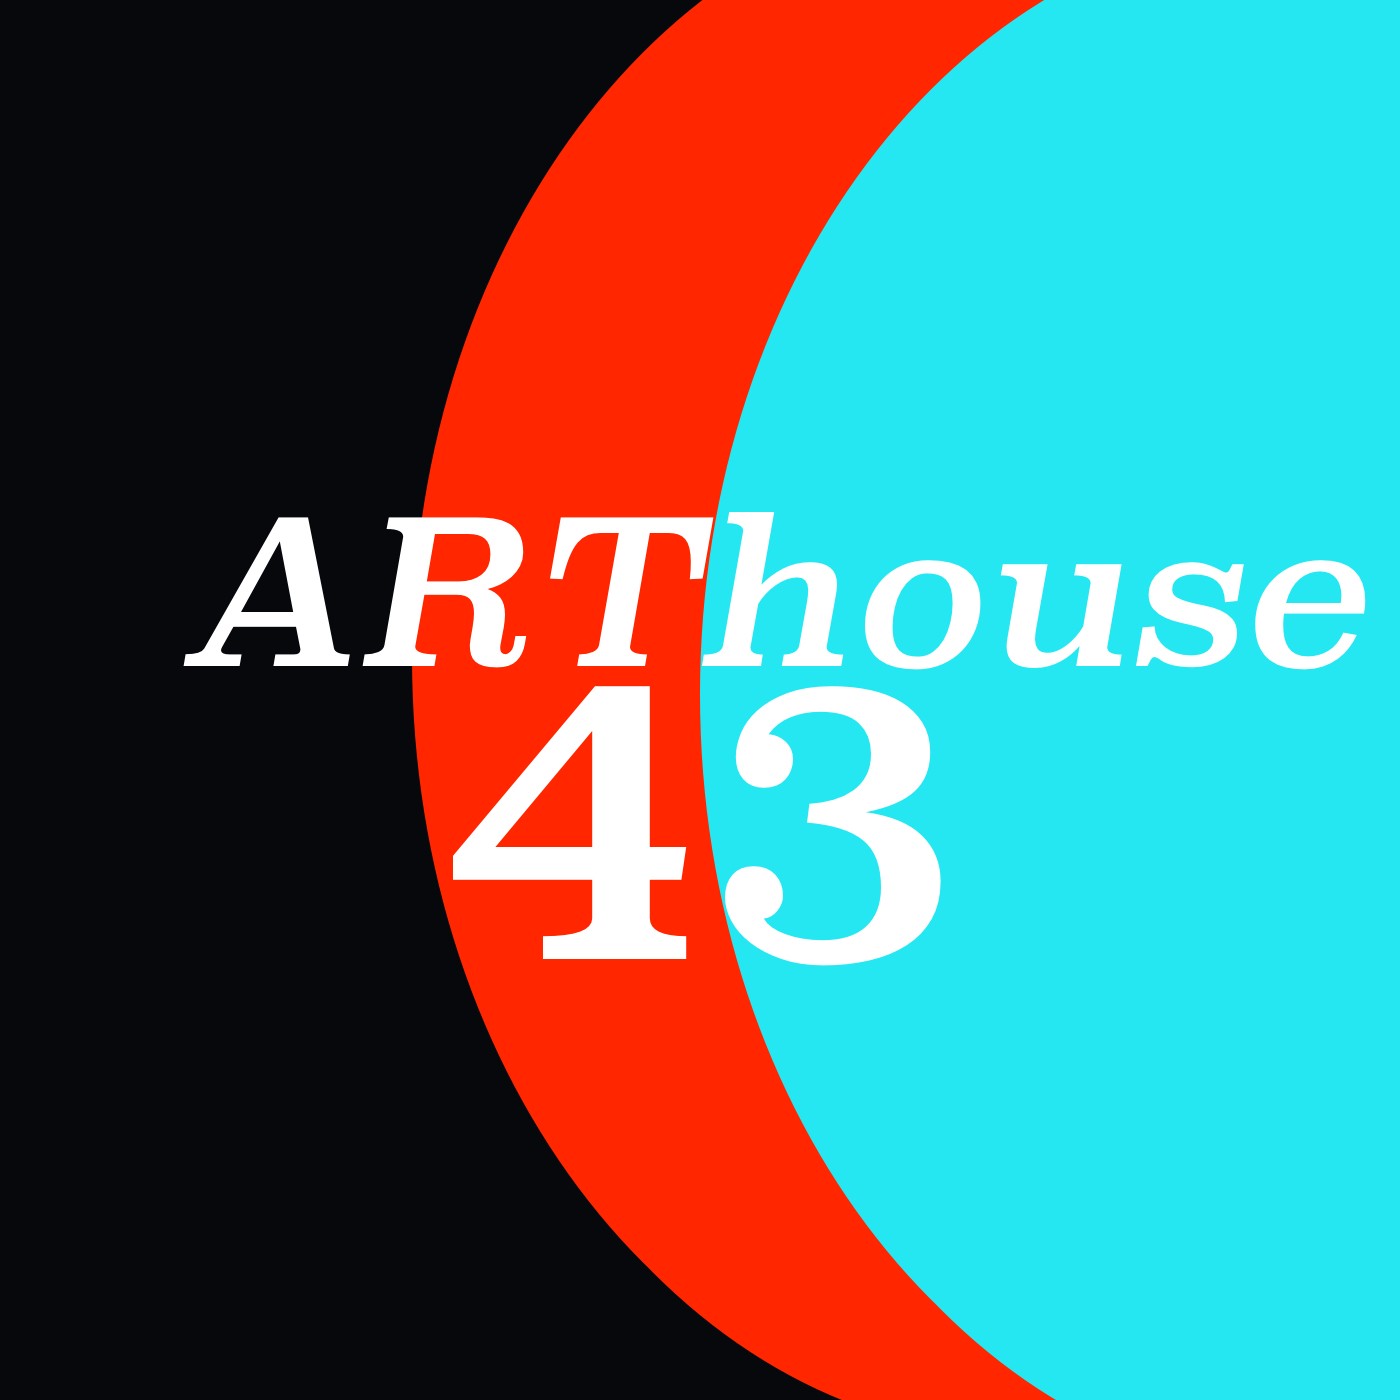 Best Abstract Art Sale - ArtHouse 43 - 2019